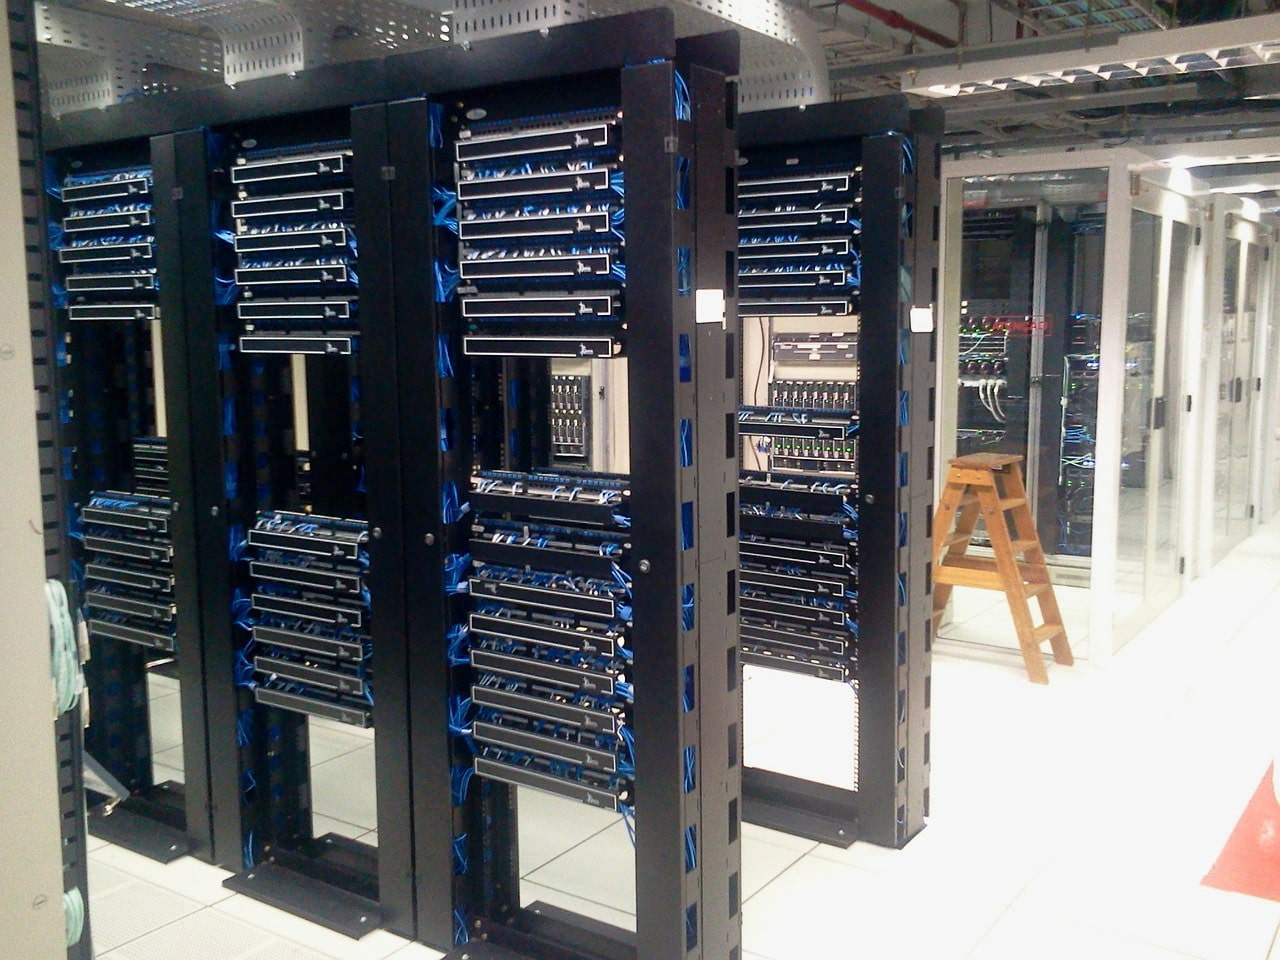 Servers in a data center